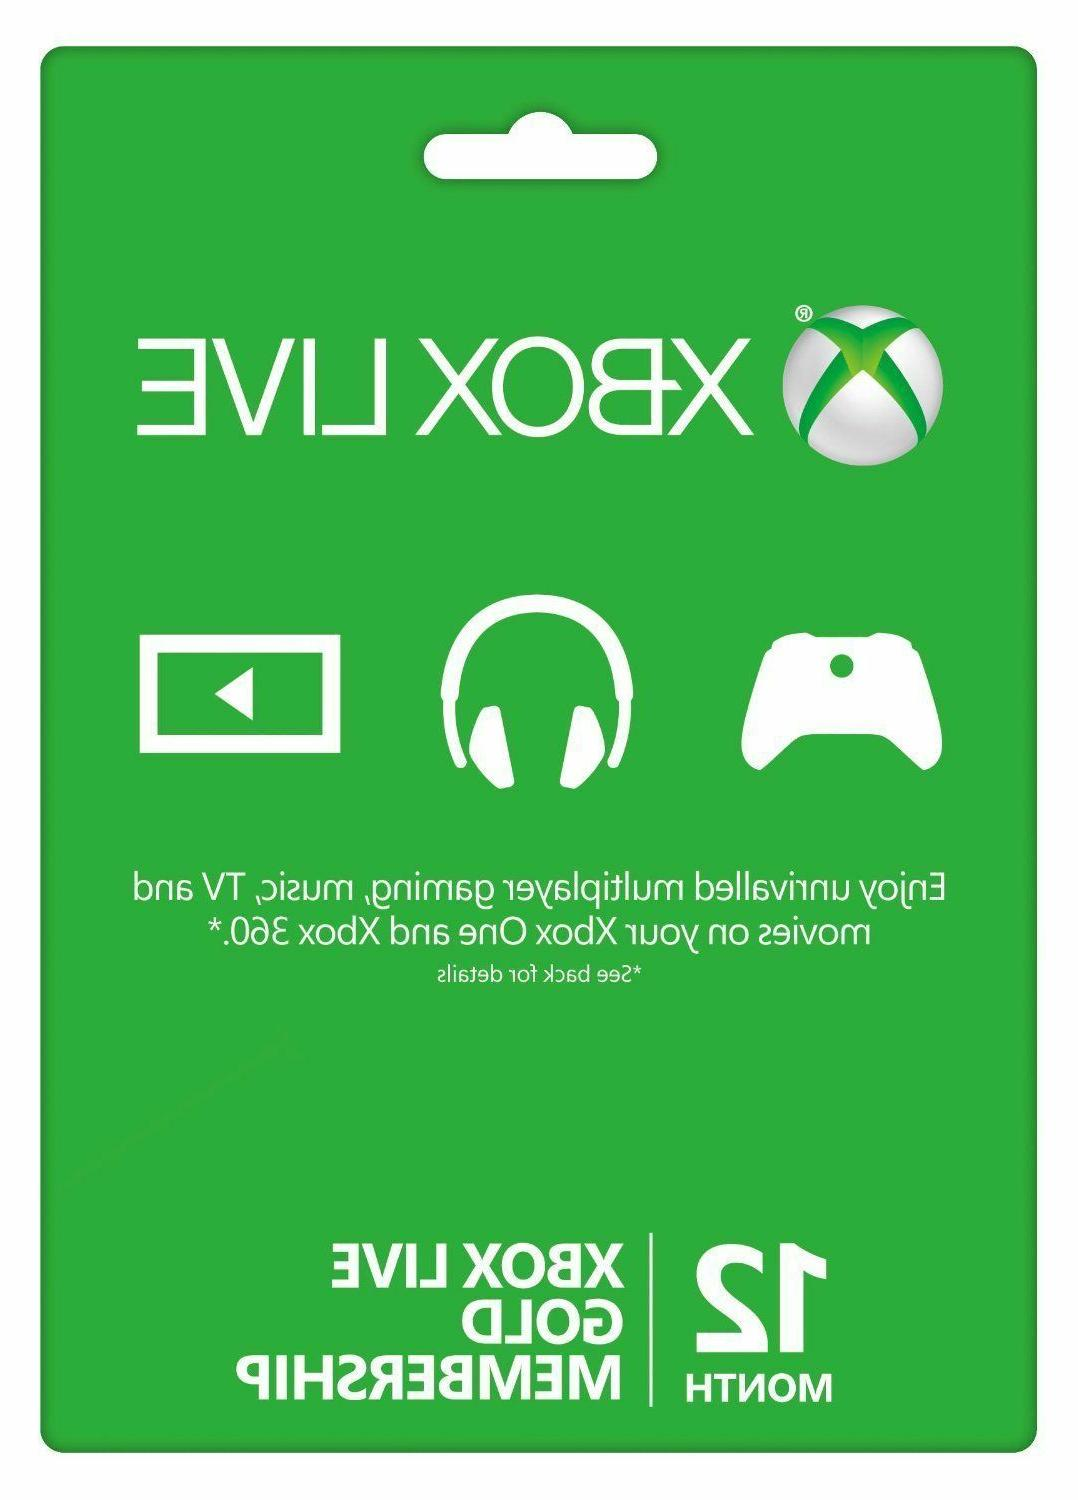 12 month xbox live gold membership subscription